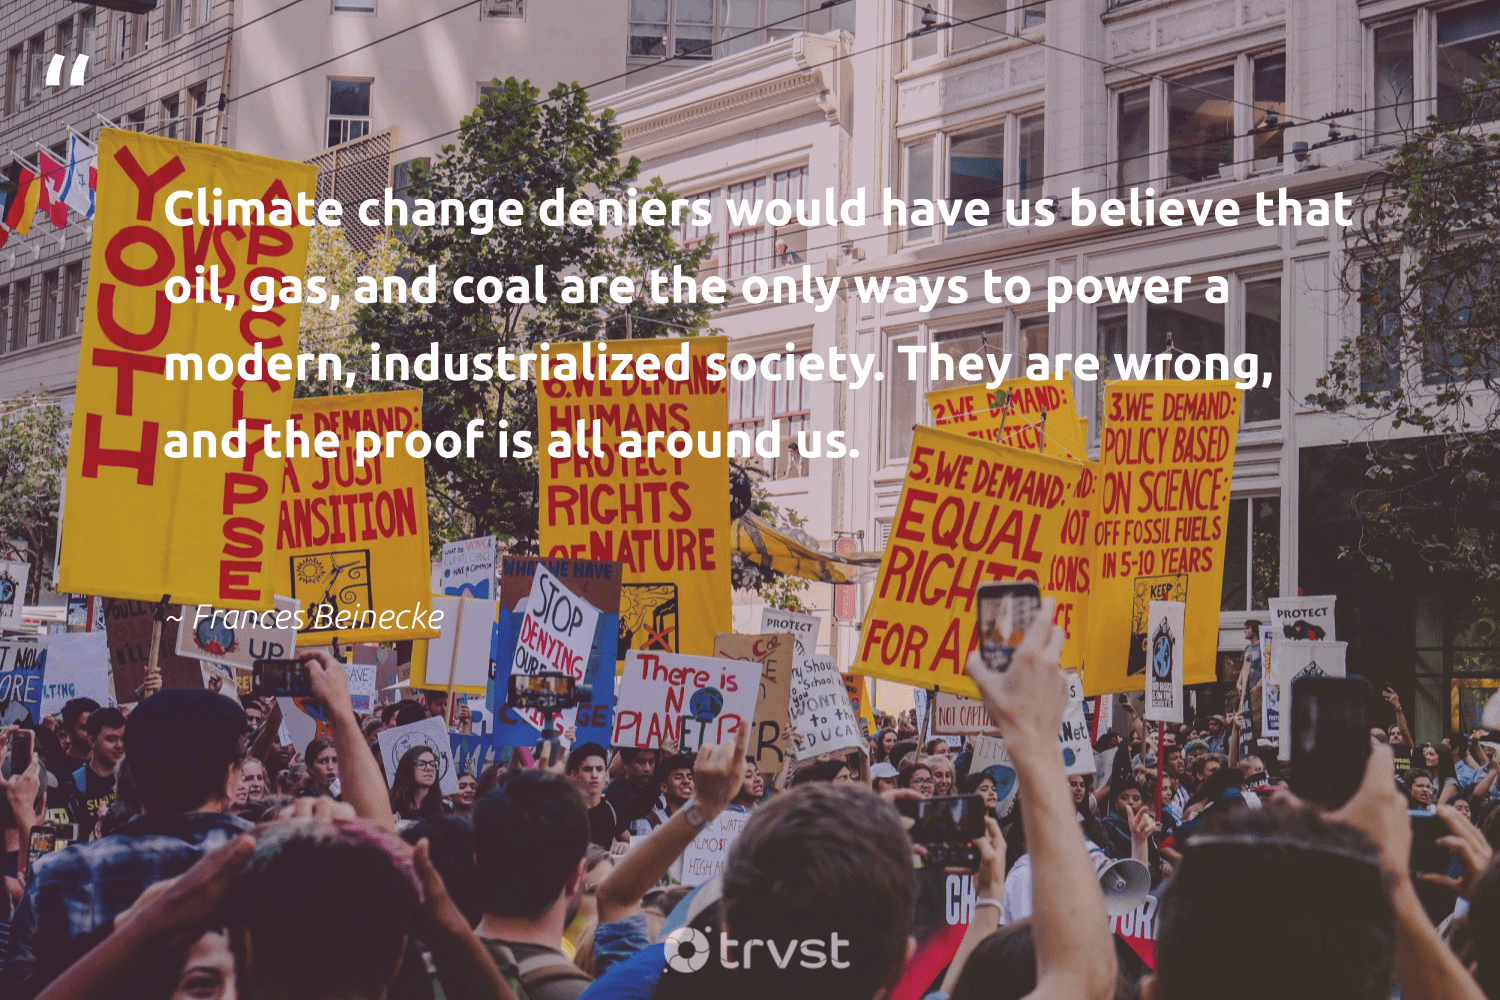 """""""Climate change deniers would have us believe that oil, gas, and coal are the only ways to power a modern, industrialized society. They are wrong, and the proof is all around us.""""  - Frances Beinecke #trvst #quotes #climatechange #oil #gas #coal #climate #society #oilslick #oilspill #climatechangeisreal #actonclimate"""